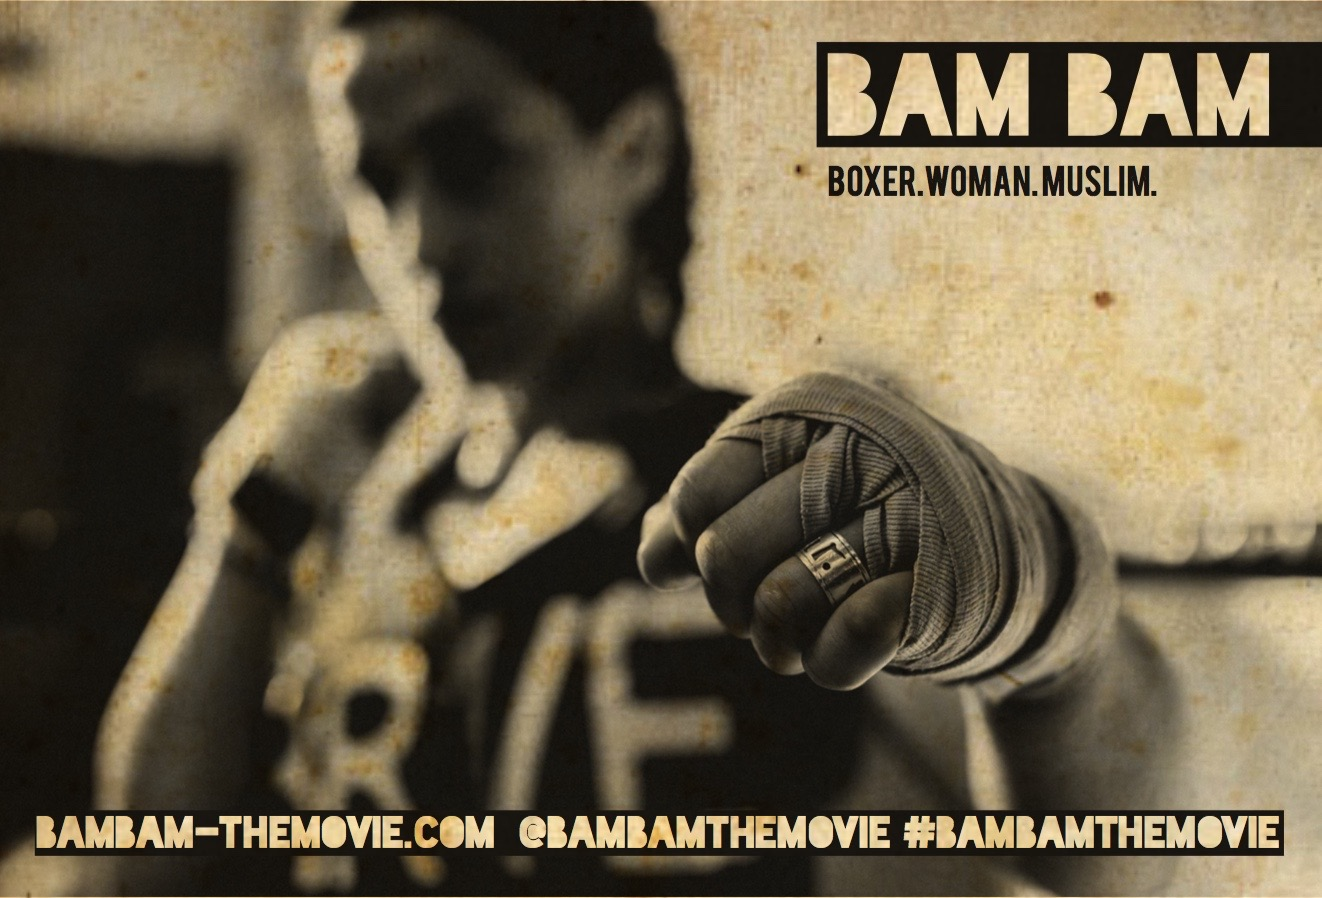 Our documentary 'Bam Bam' is on the road to the World Championships in May 2016